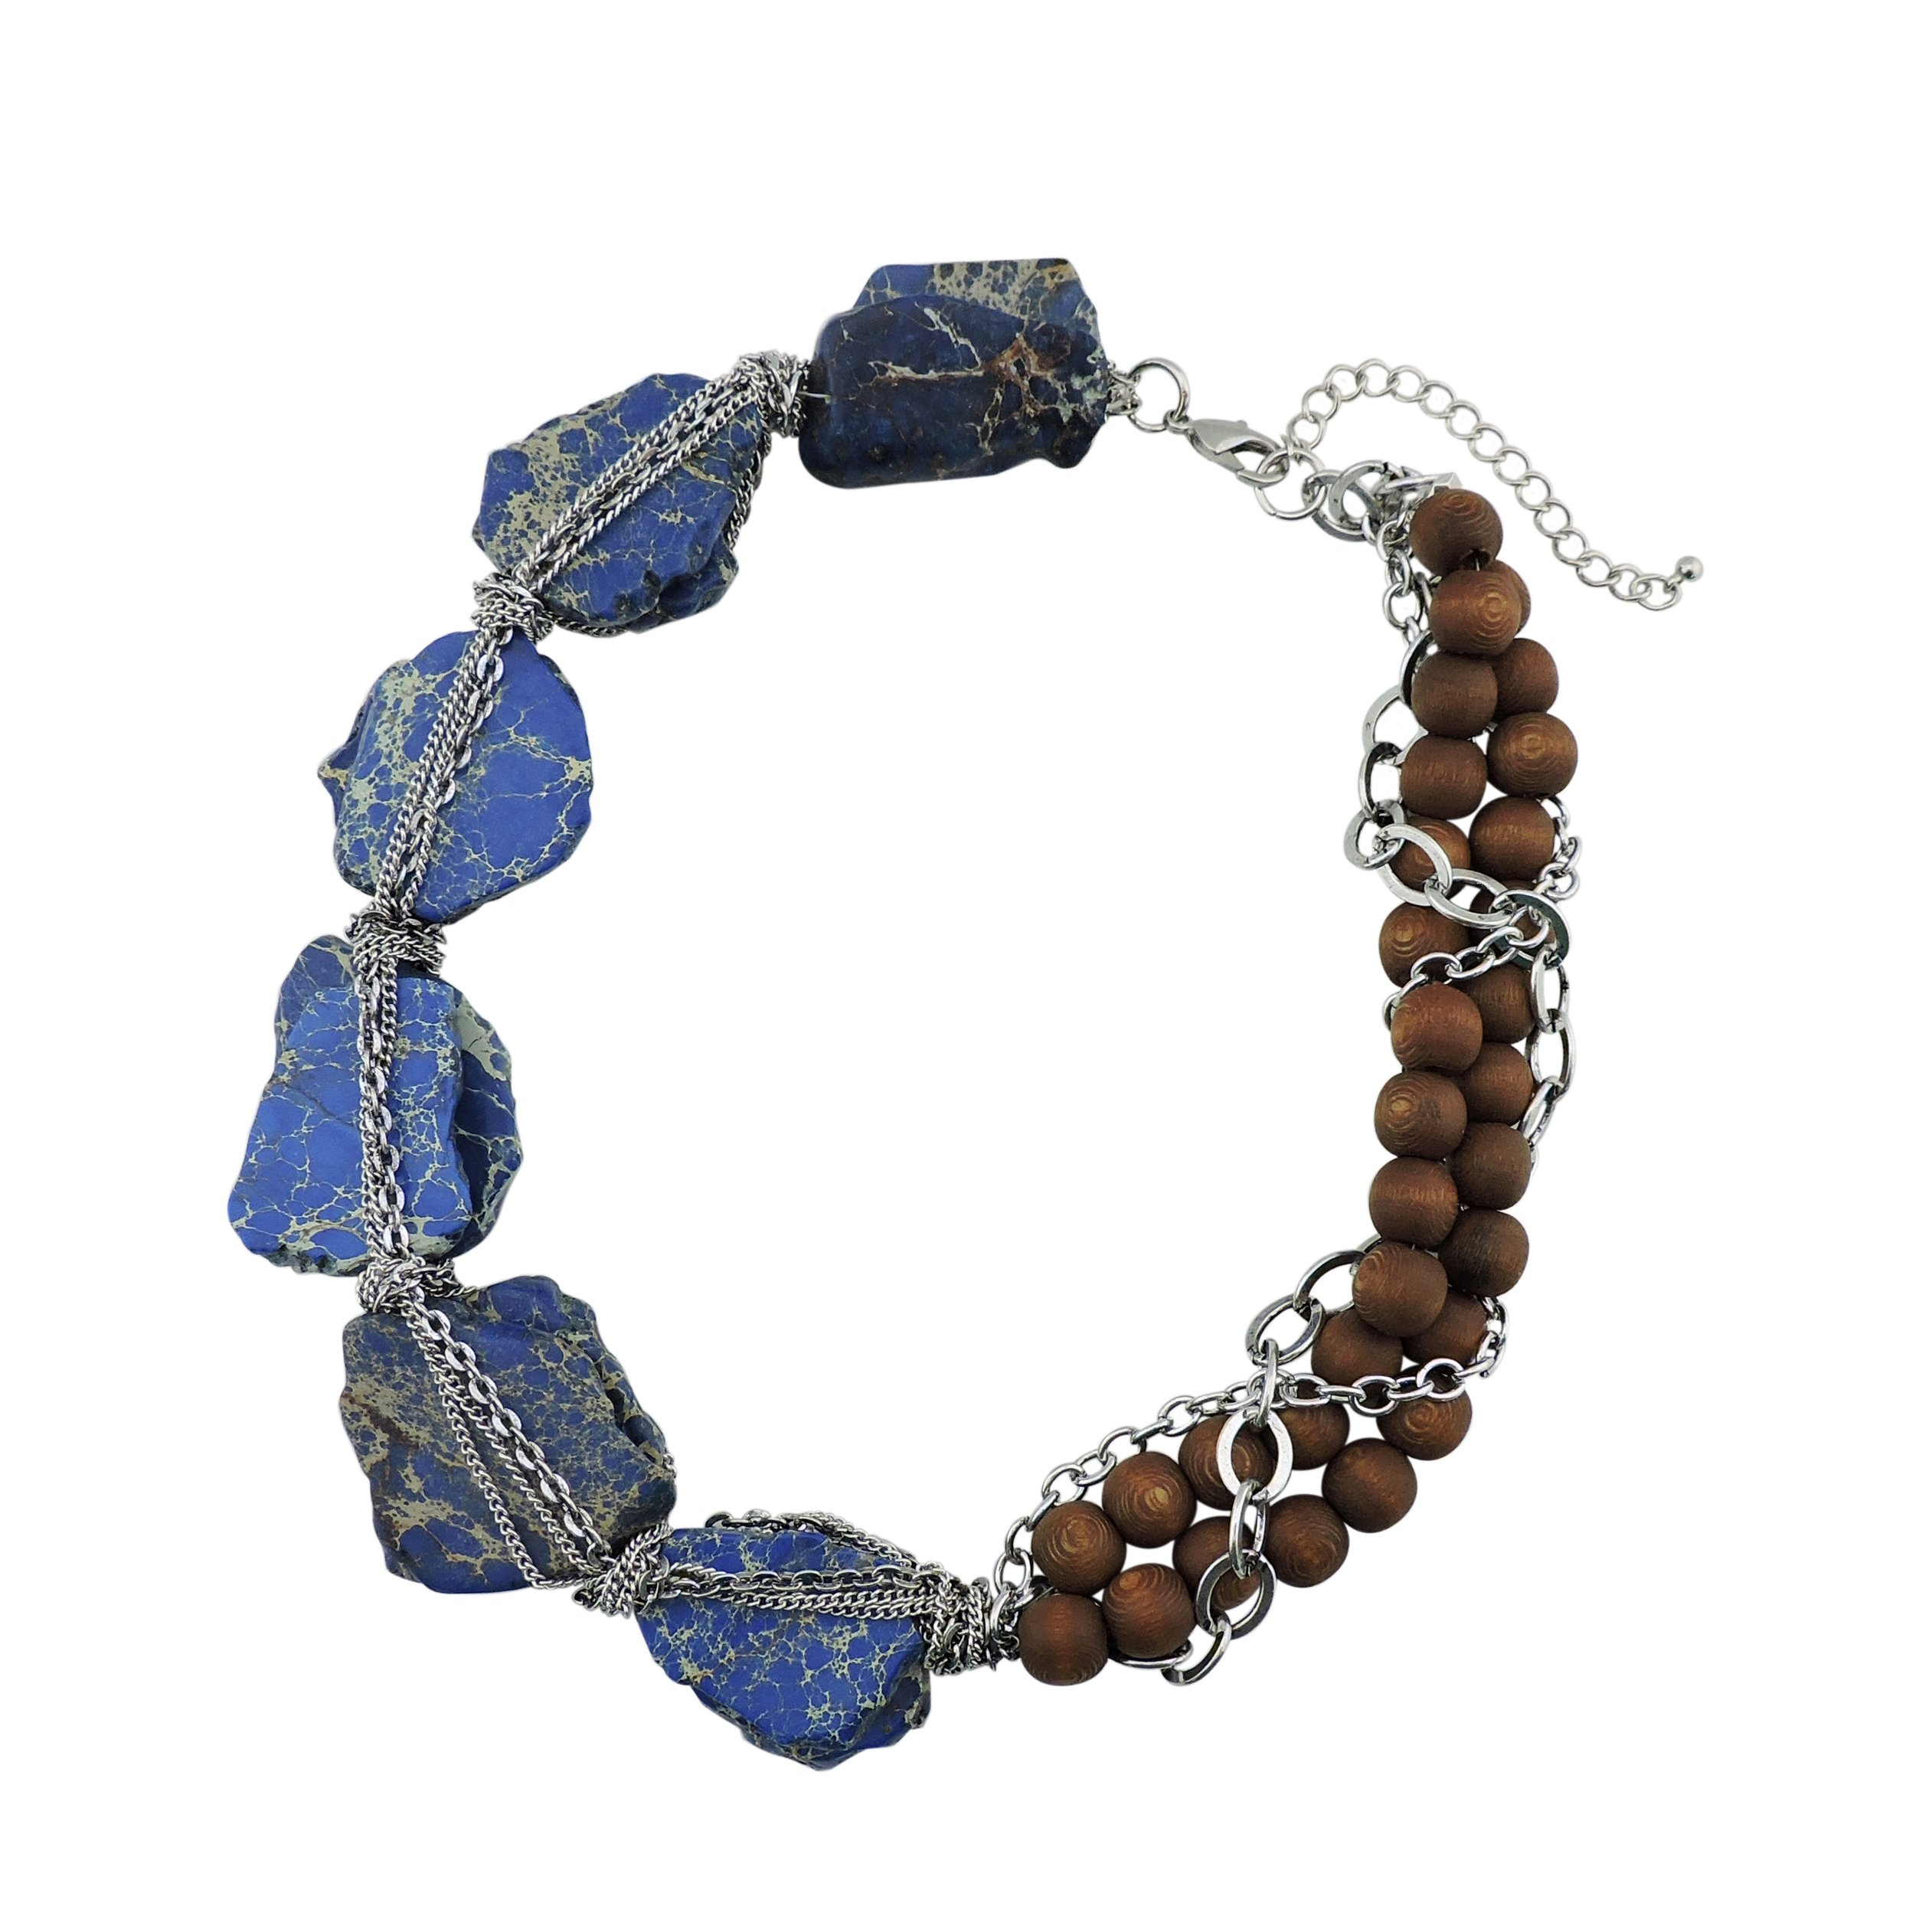 BOCAR Personalized Big Statement Turquoise Chunky Collar Chain Necklace for Women Gifts (NK-10271-baja blue)